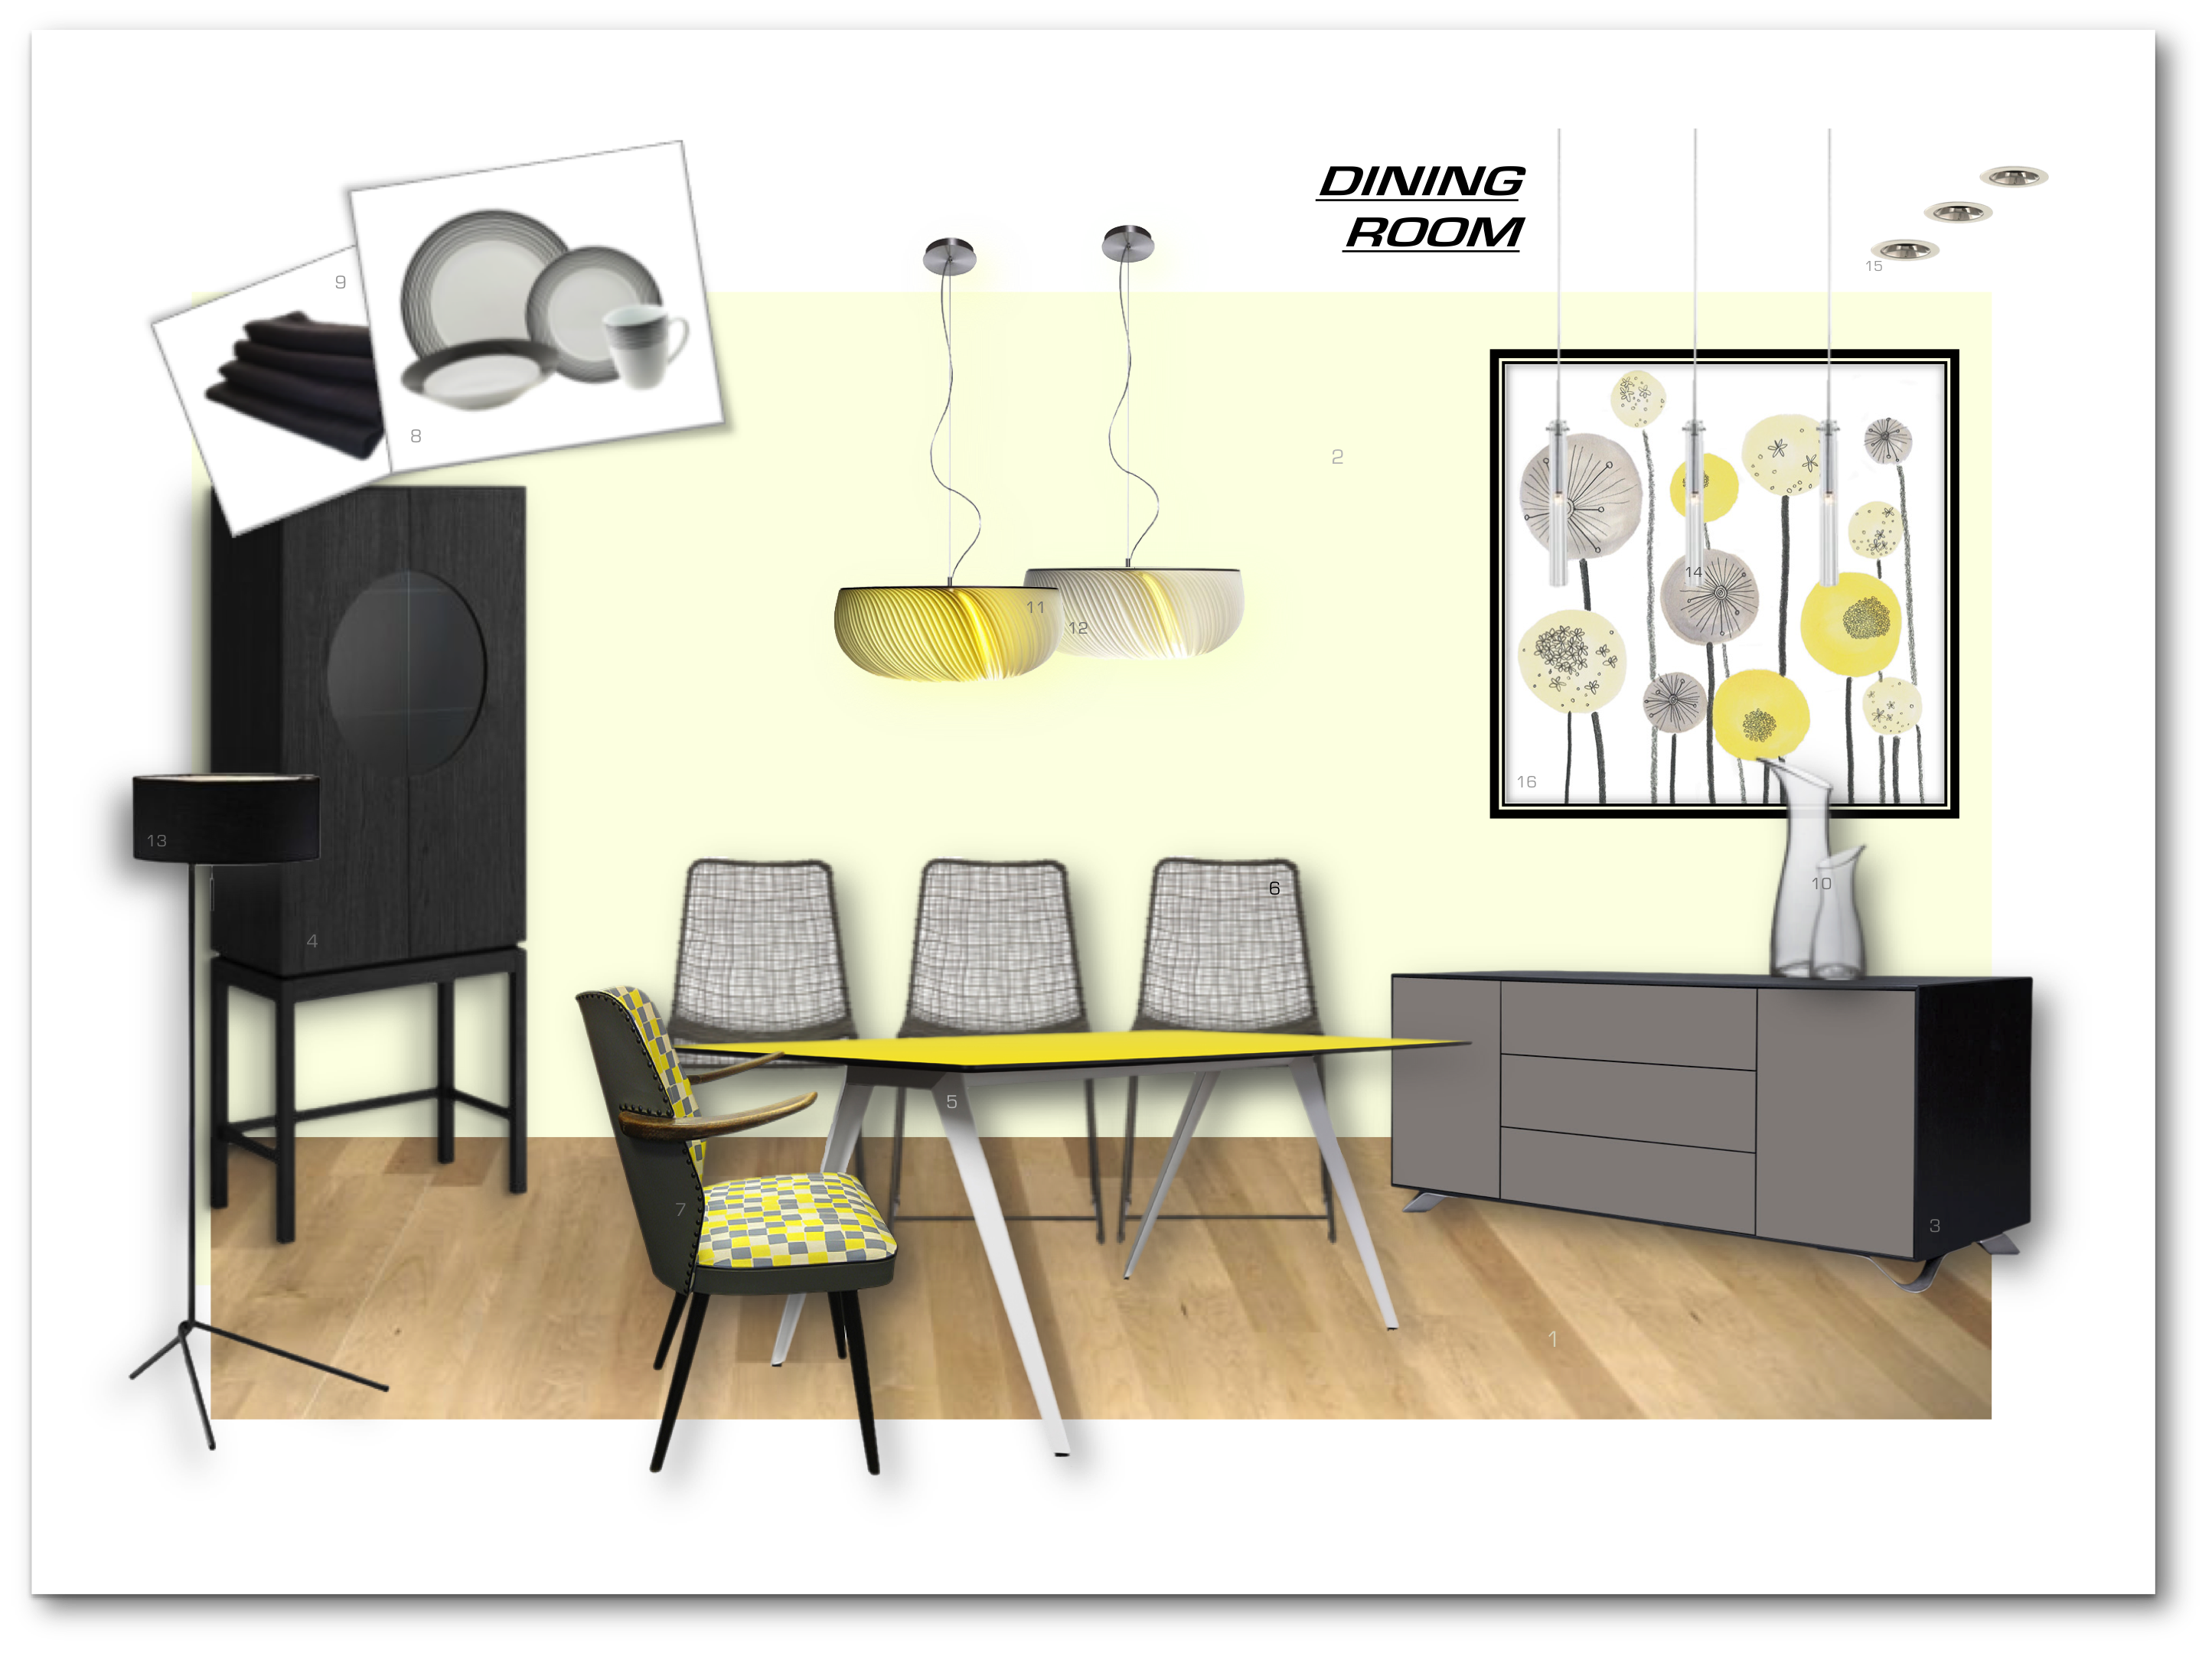 show home dining room | Dining Room, 3-Bed Show Home - Den Designery